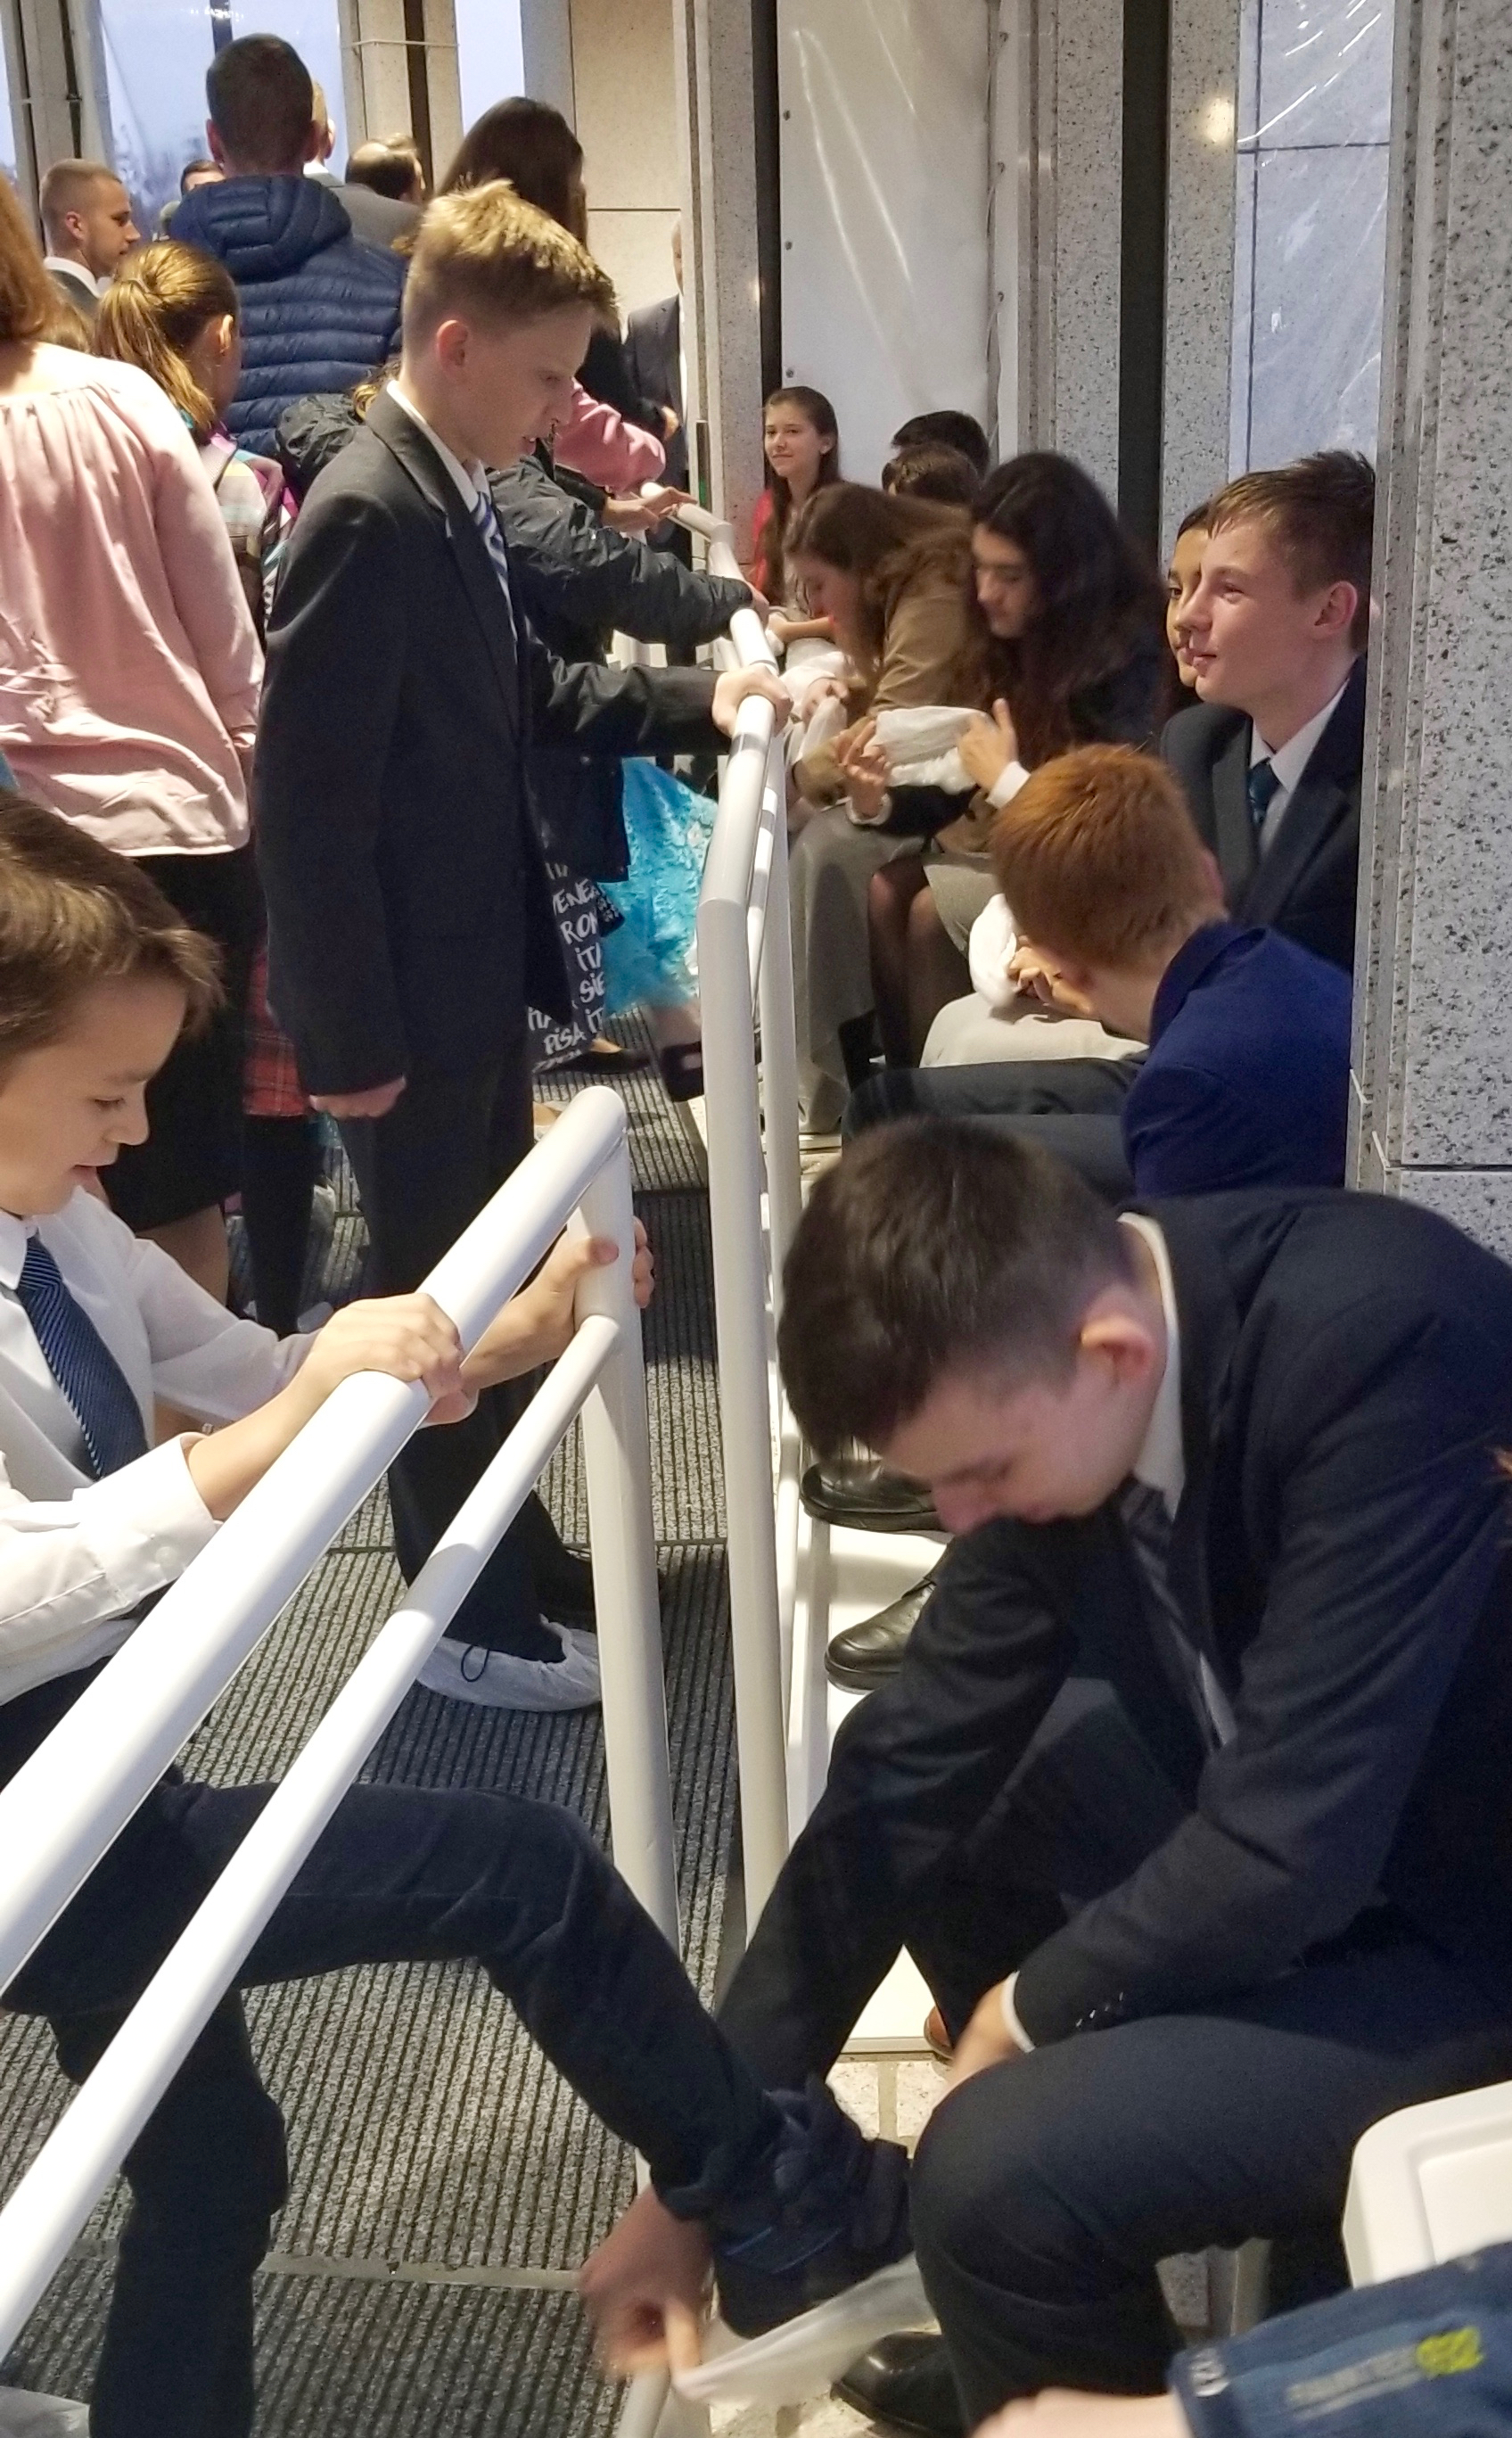 Youth help place protective coverings on the shoes of those arriving to attend the rededication services of the Frankfurt Germany Temple on Oct. 20, 2019.